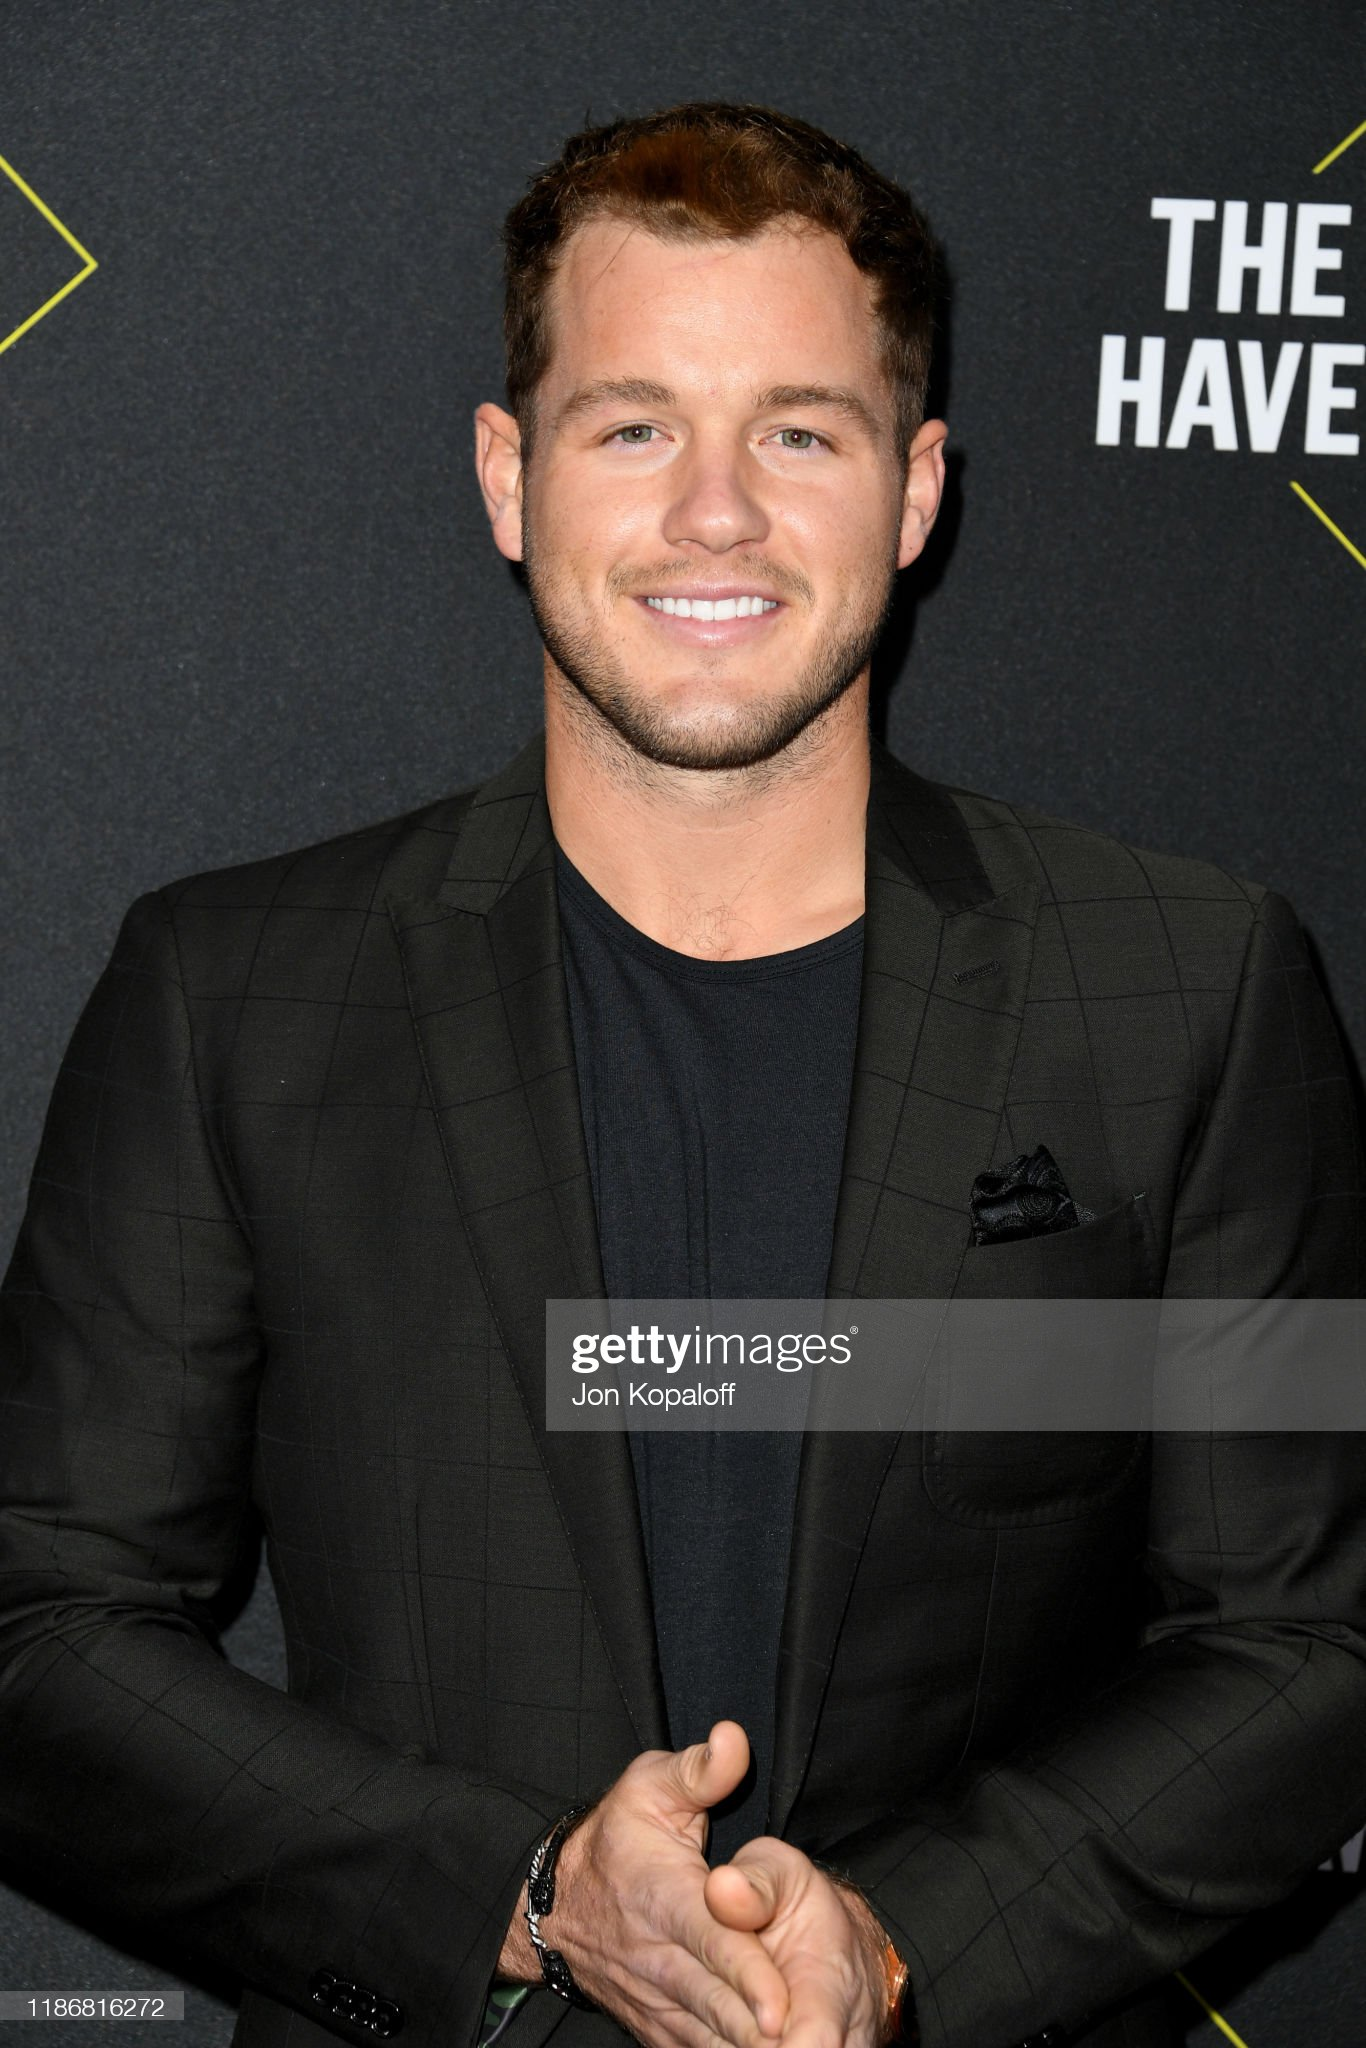 Colton Underwood & Cassie Randolph - Bachelor 23 - Discussion - Page 14 Colton-underwood-attends-the-2019-e-peoples-choice-awards-at-barker-picture-id1186816272?s=2048x2048